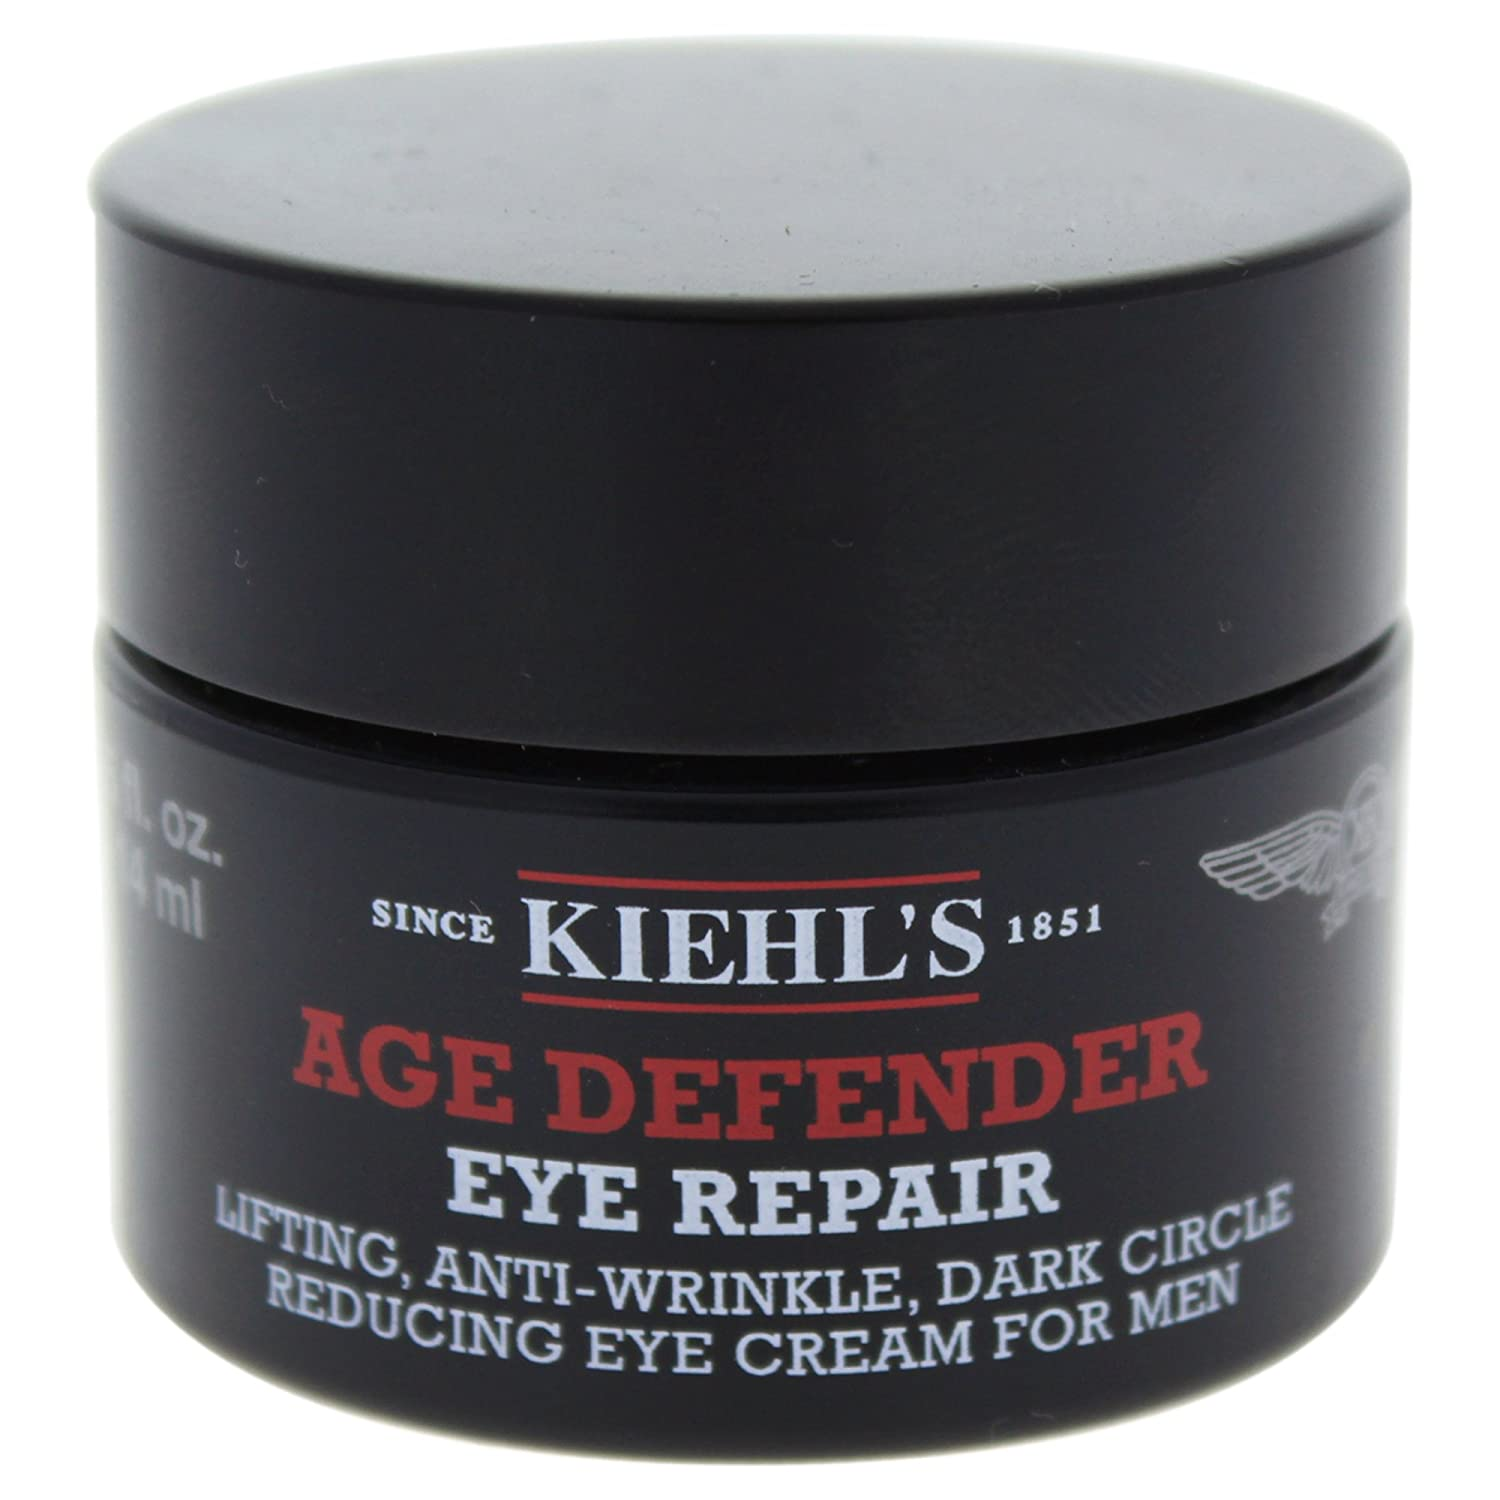 Kiehl's Age Defender Eye Repair Cream for Men, 0.5 Ounce PerfumeWorldWide Inc. Eye Treatment Creams